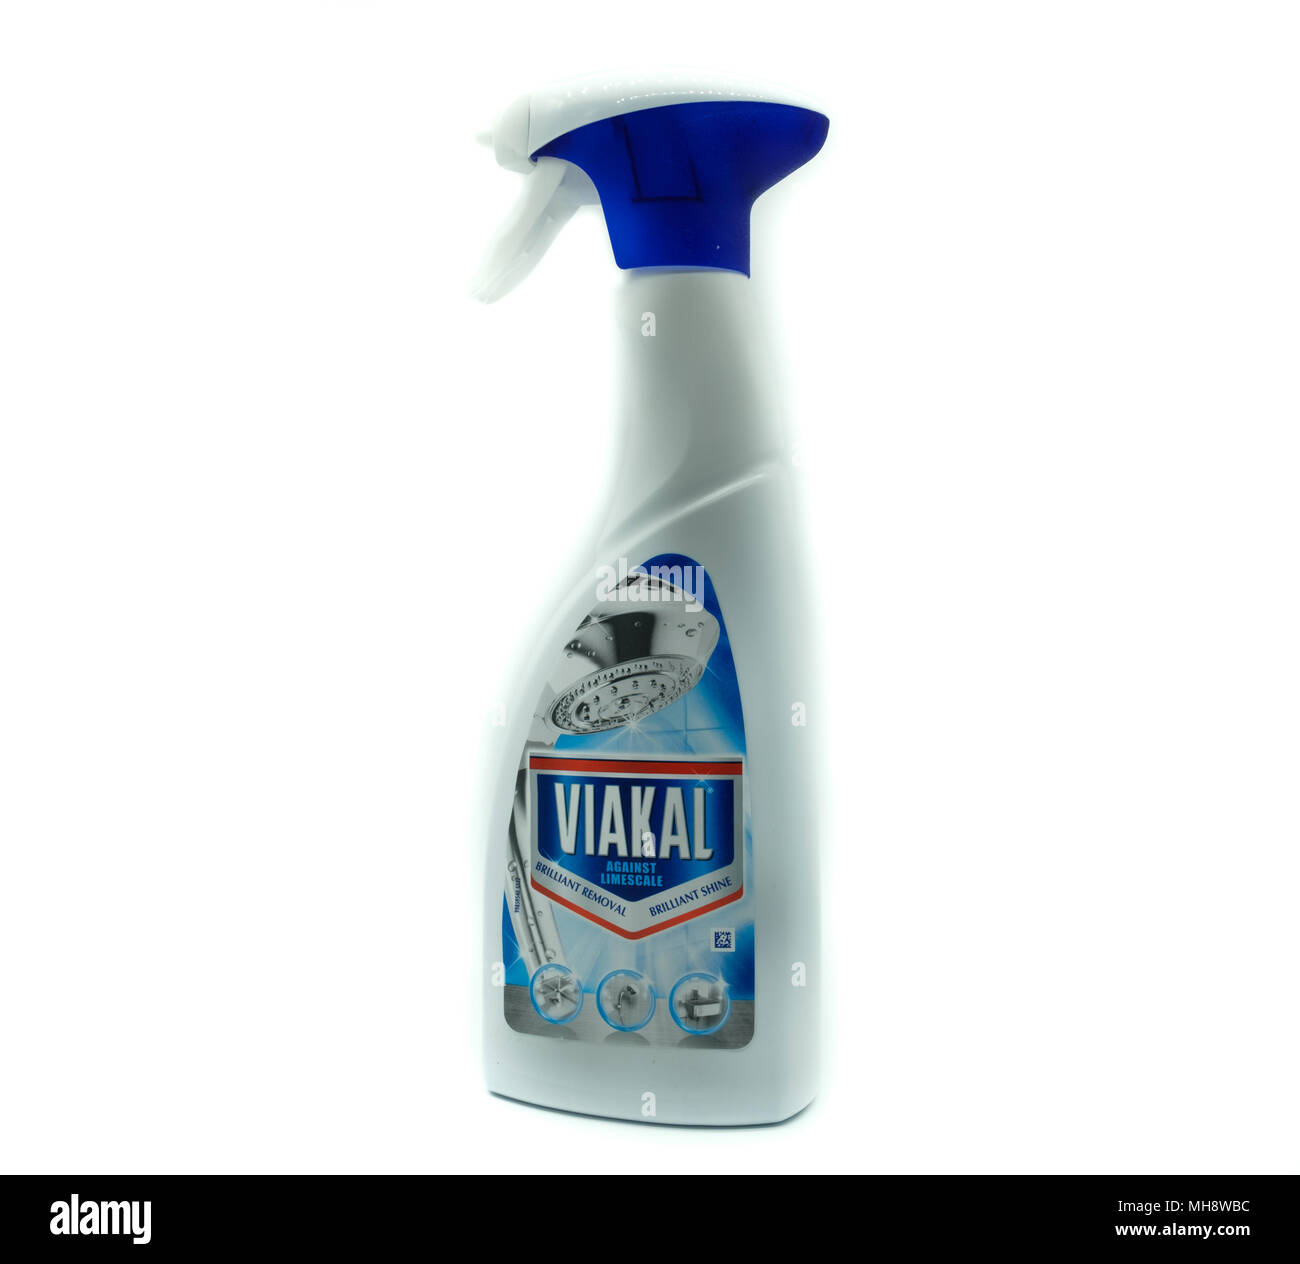 Largs, SCotland, UK - April 25, 2018:                                       A Spray Bottle of Viakal Shower Cleaner in Recyclable Plastic Container in - Stock Image